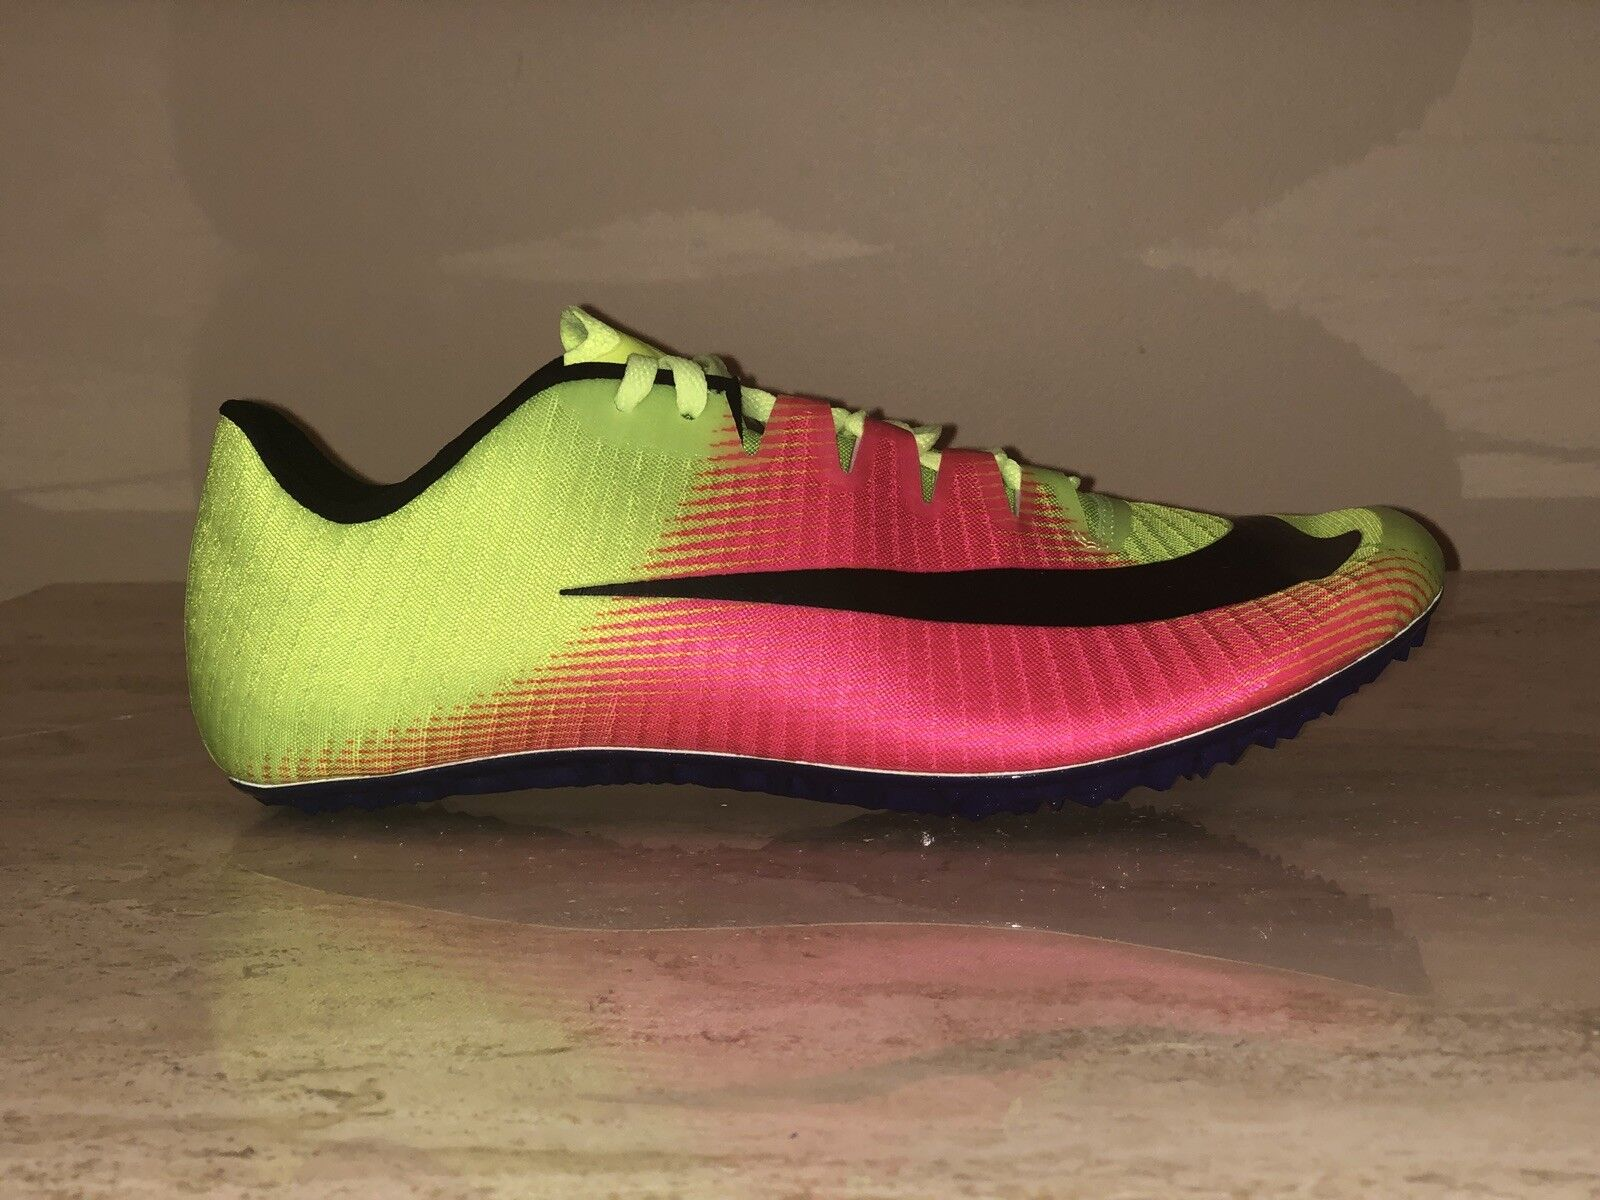 Nike Zoom JA FLY 3 OC Rio Track & Field Spikes Volt 882032-999 Men's US 10 & 11 Comfortable and good-looking